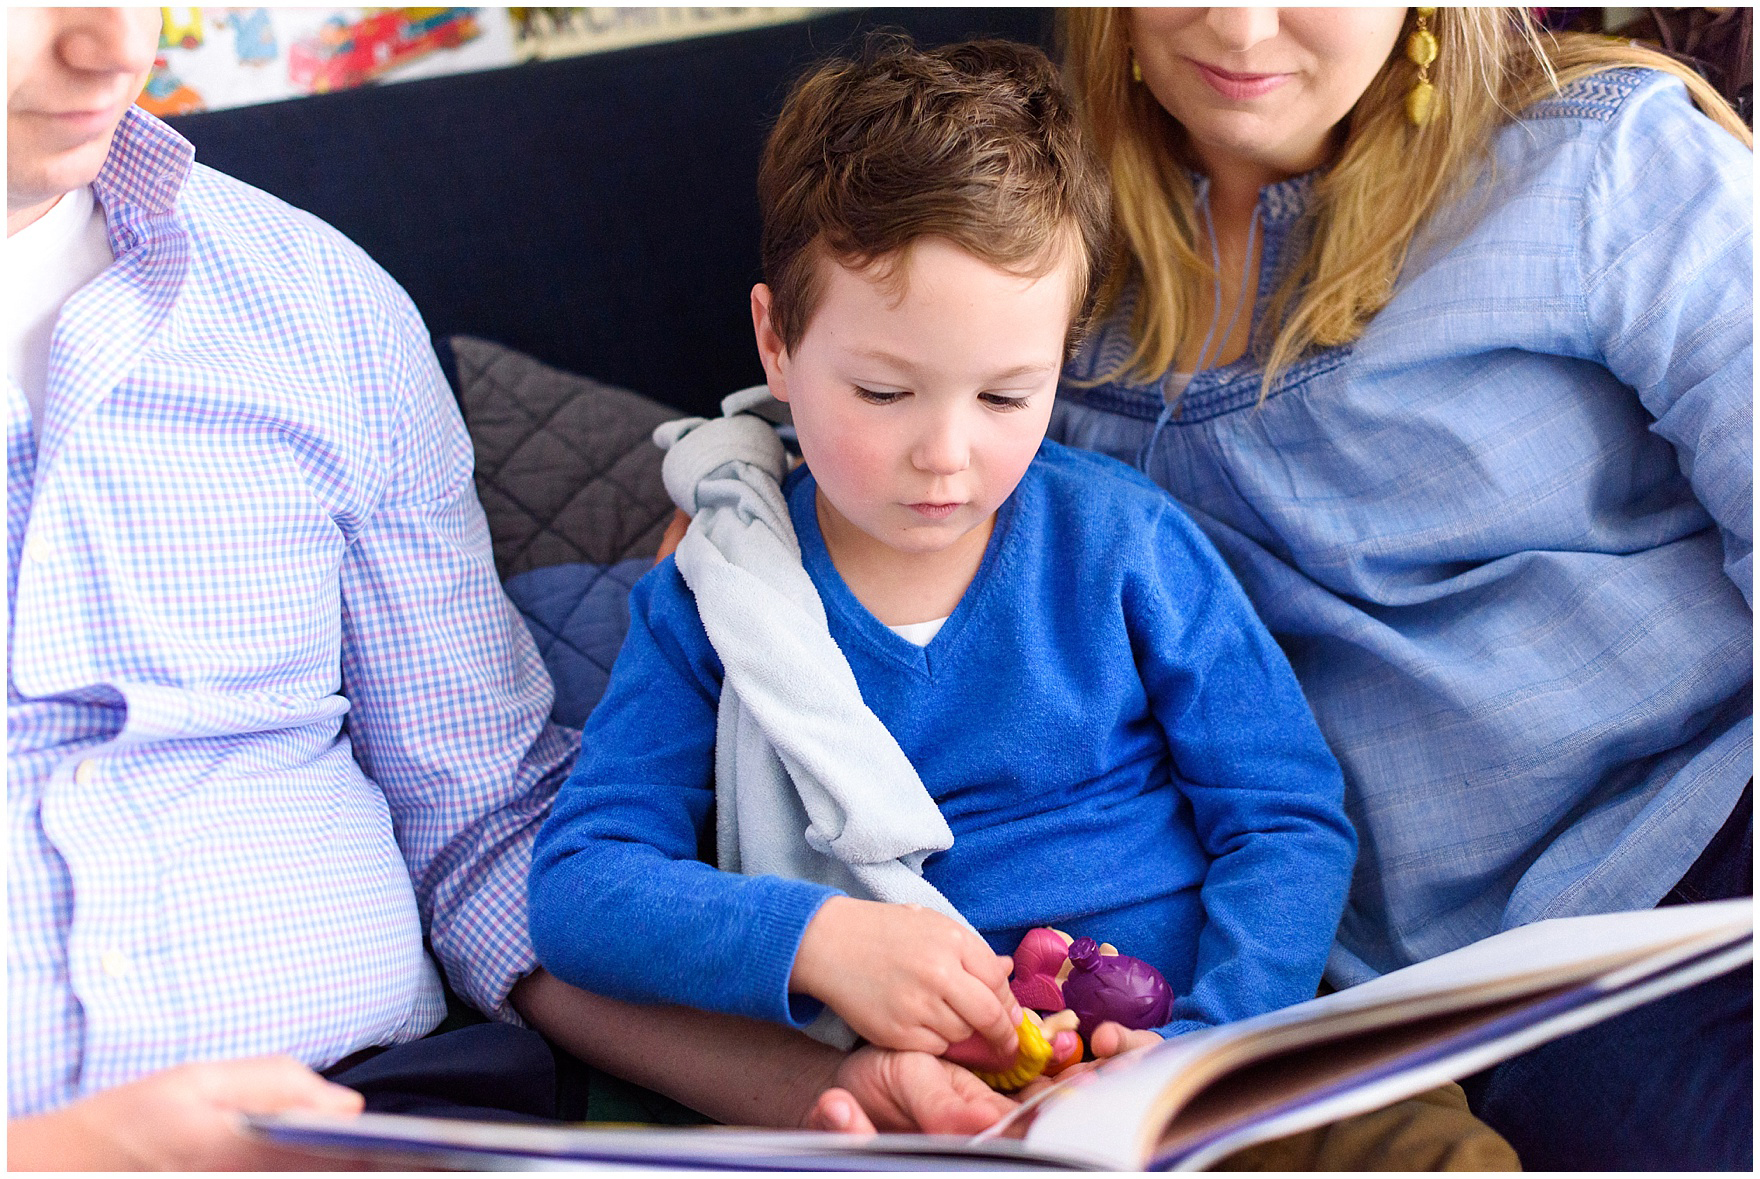 Mom and dad snuggle and read with their son during an at home family session.